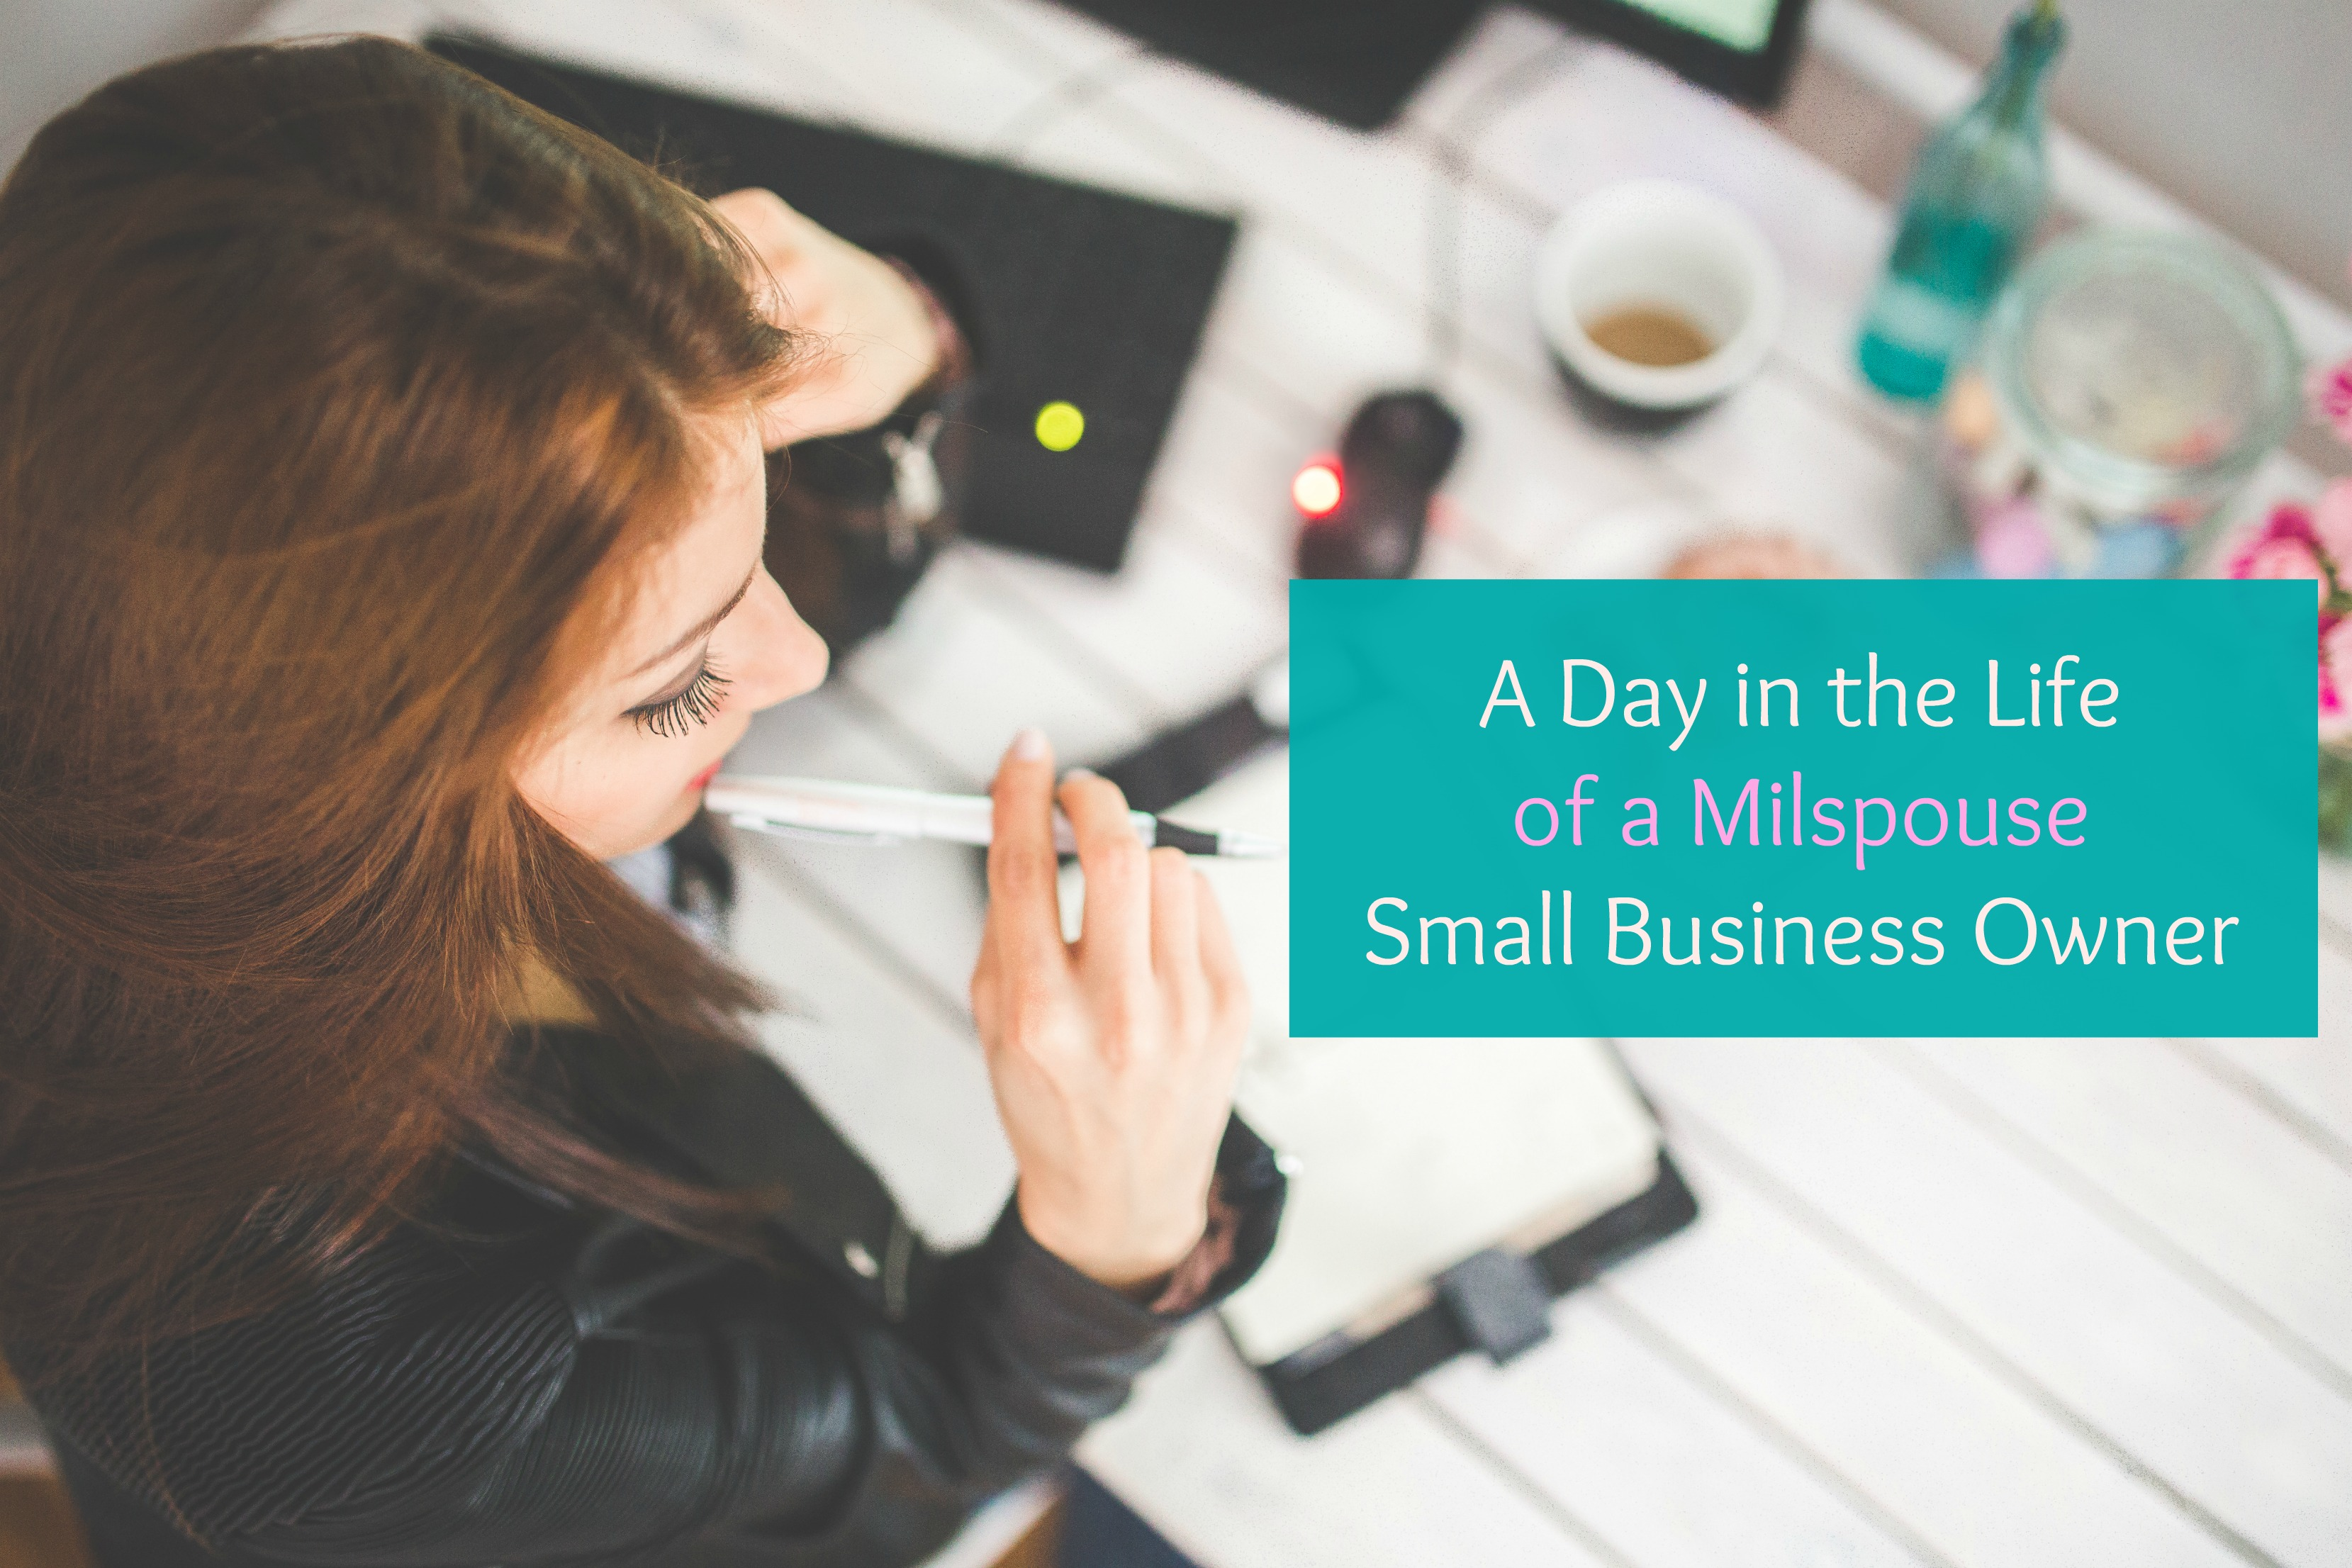 A Day in the Life of a Milspouse Small Business Owner